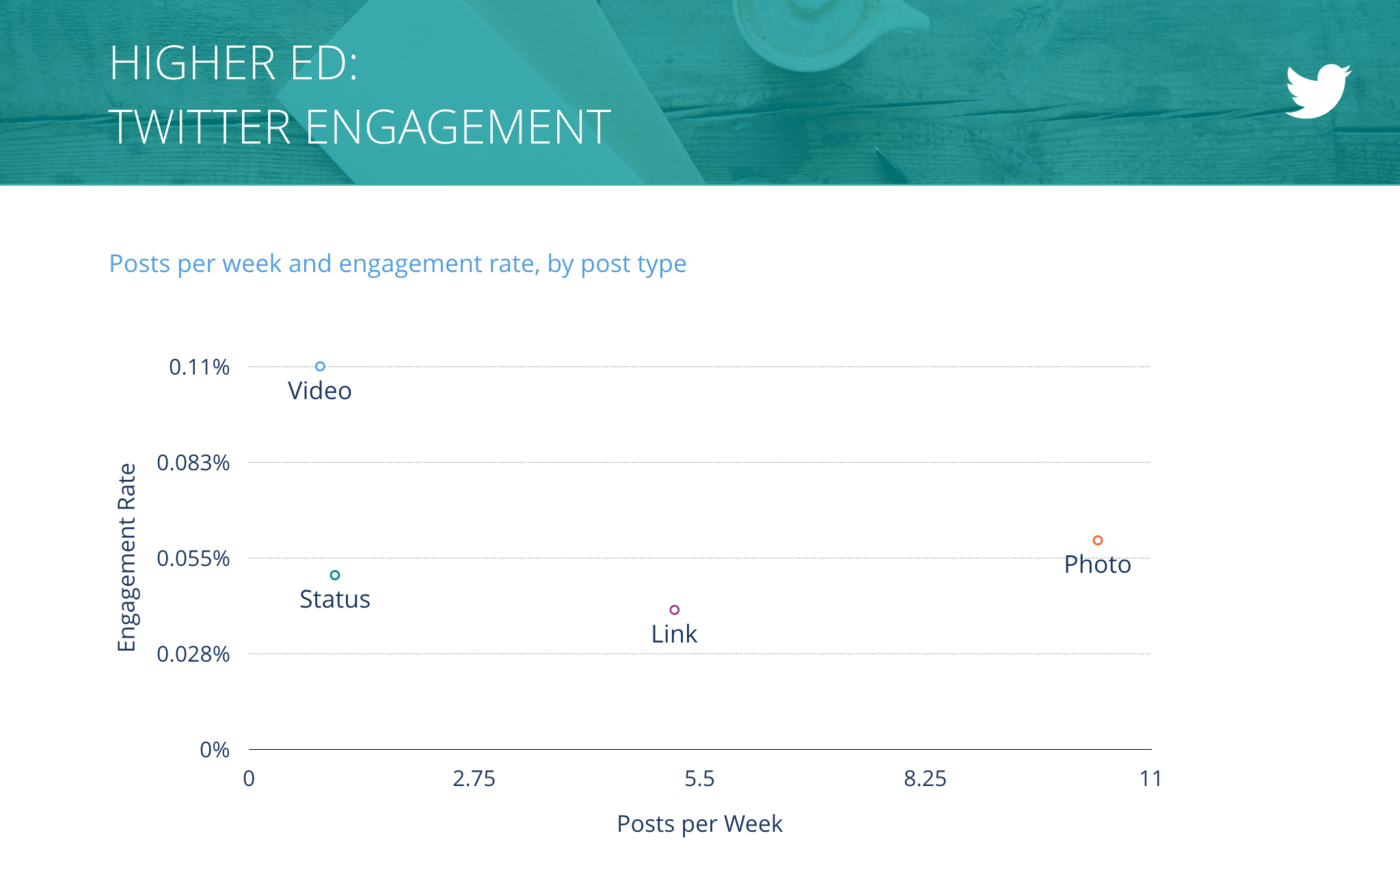 slide for Tweets per Week vs. Engagement Rate per Tweet, Higher Ed